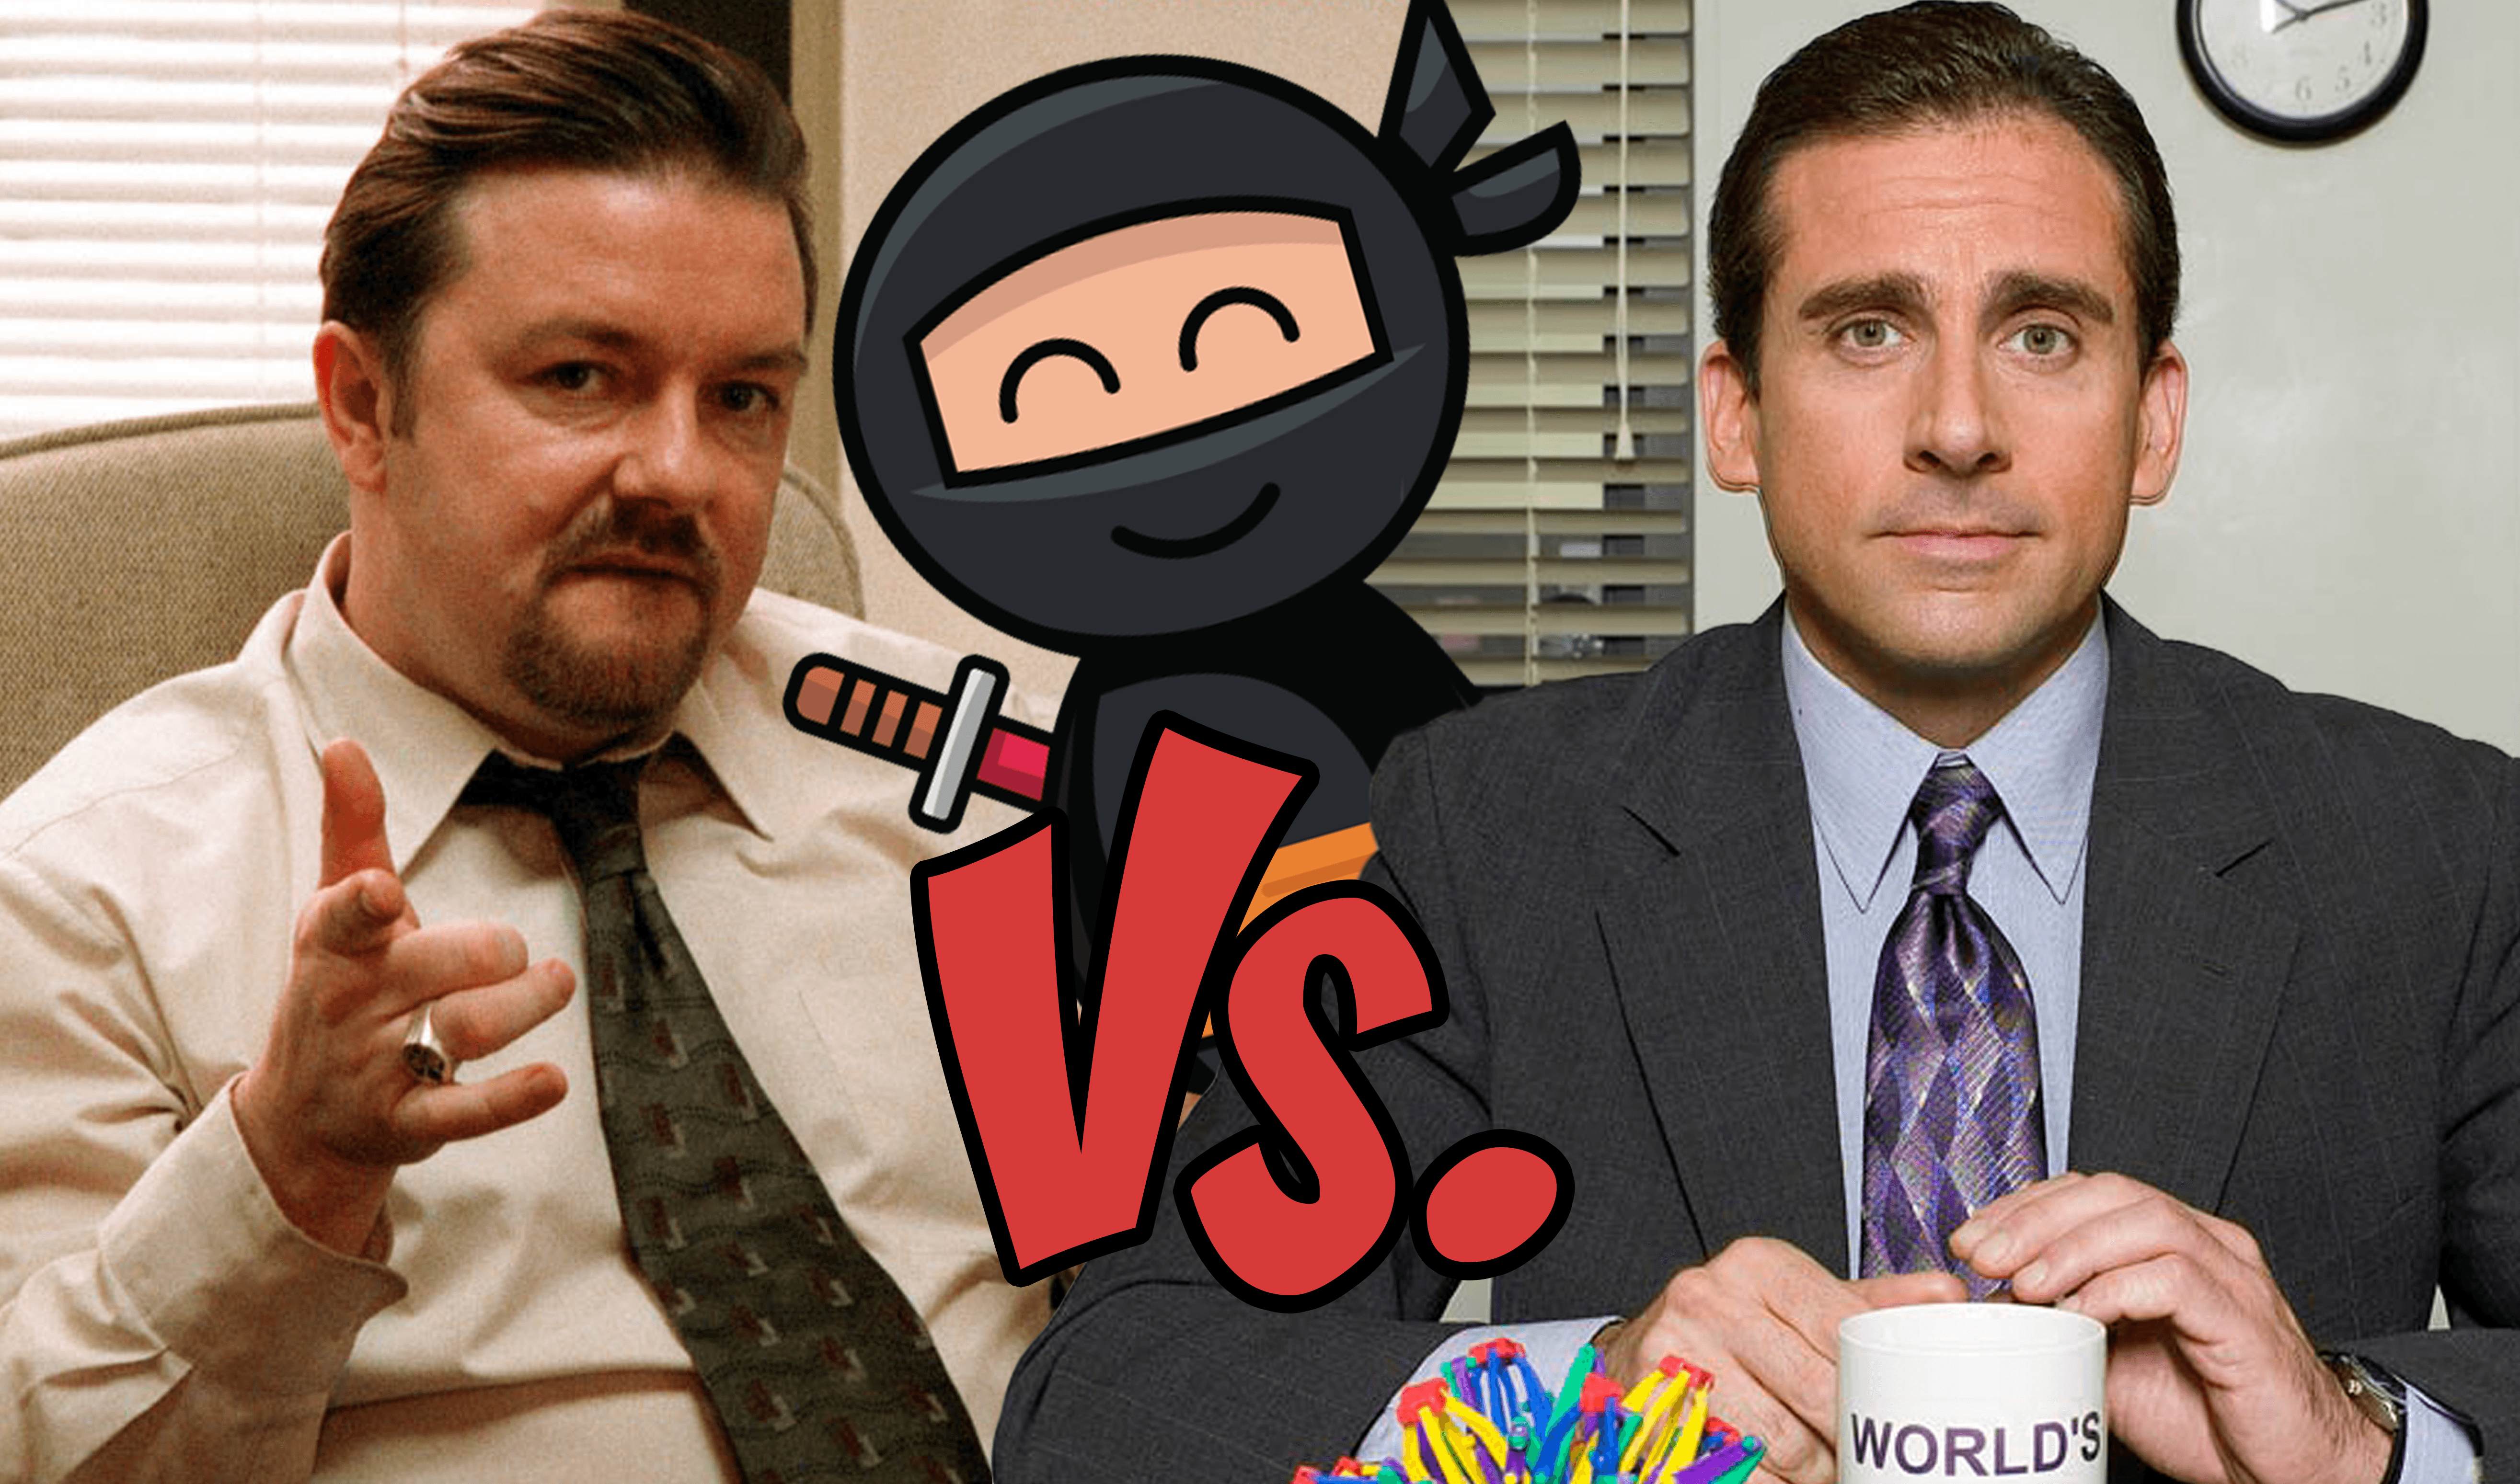 david-brent-vs-michael-scott